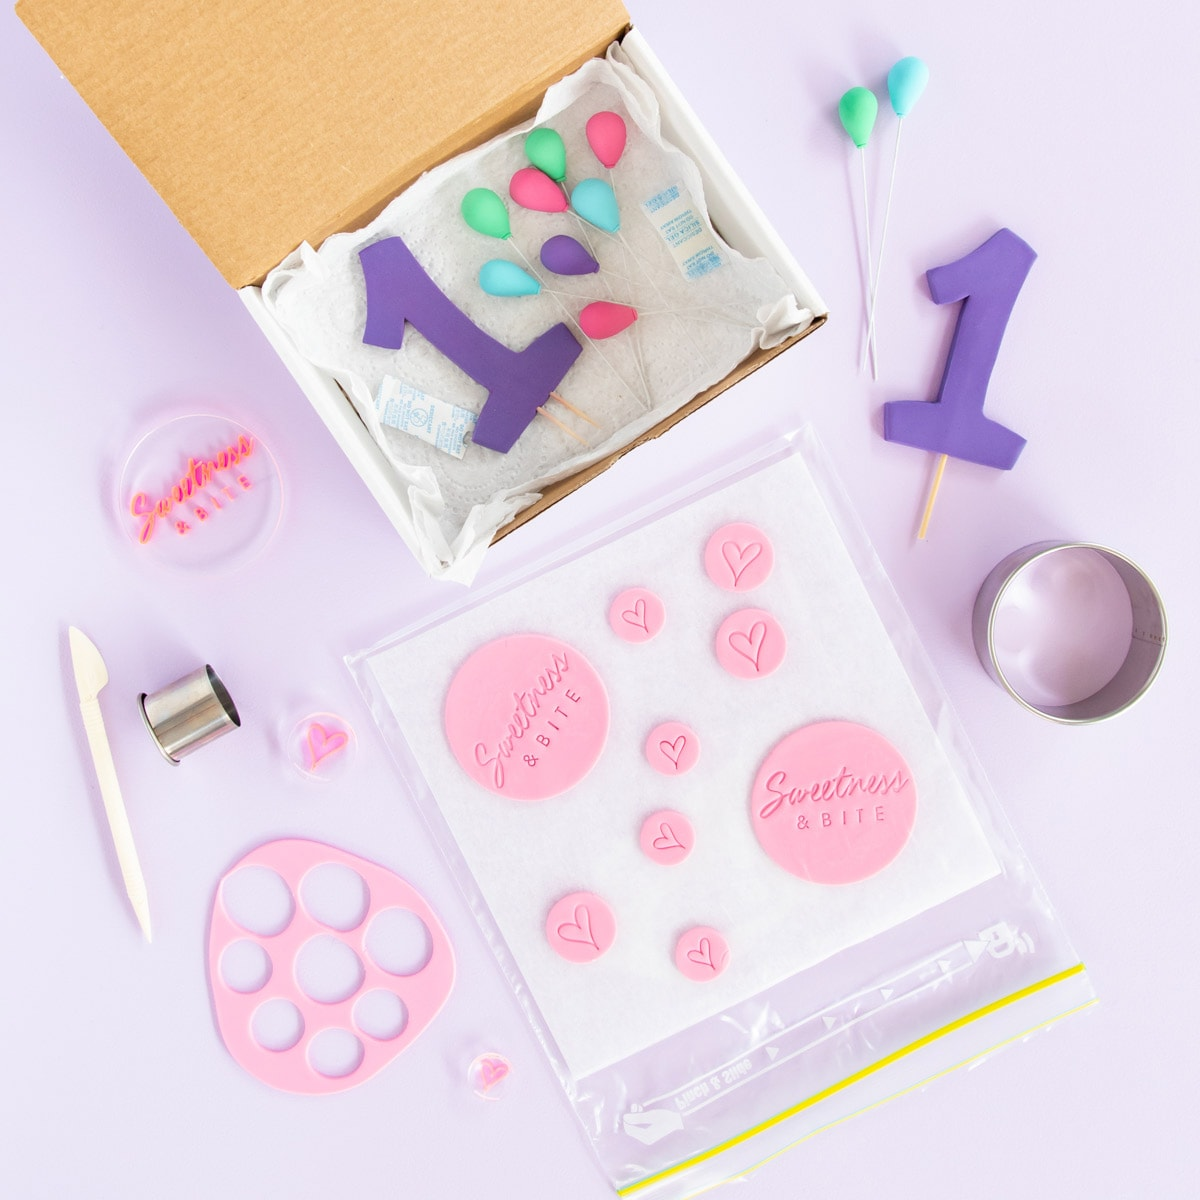 Fondant and gumpaste cake decorations in a box and in a resealable plastic bag.